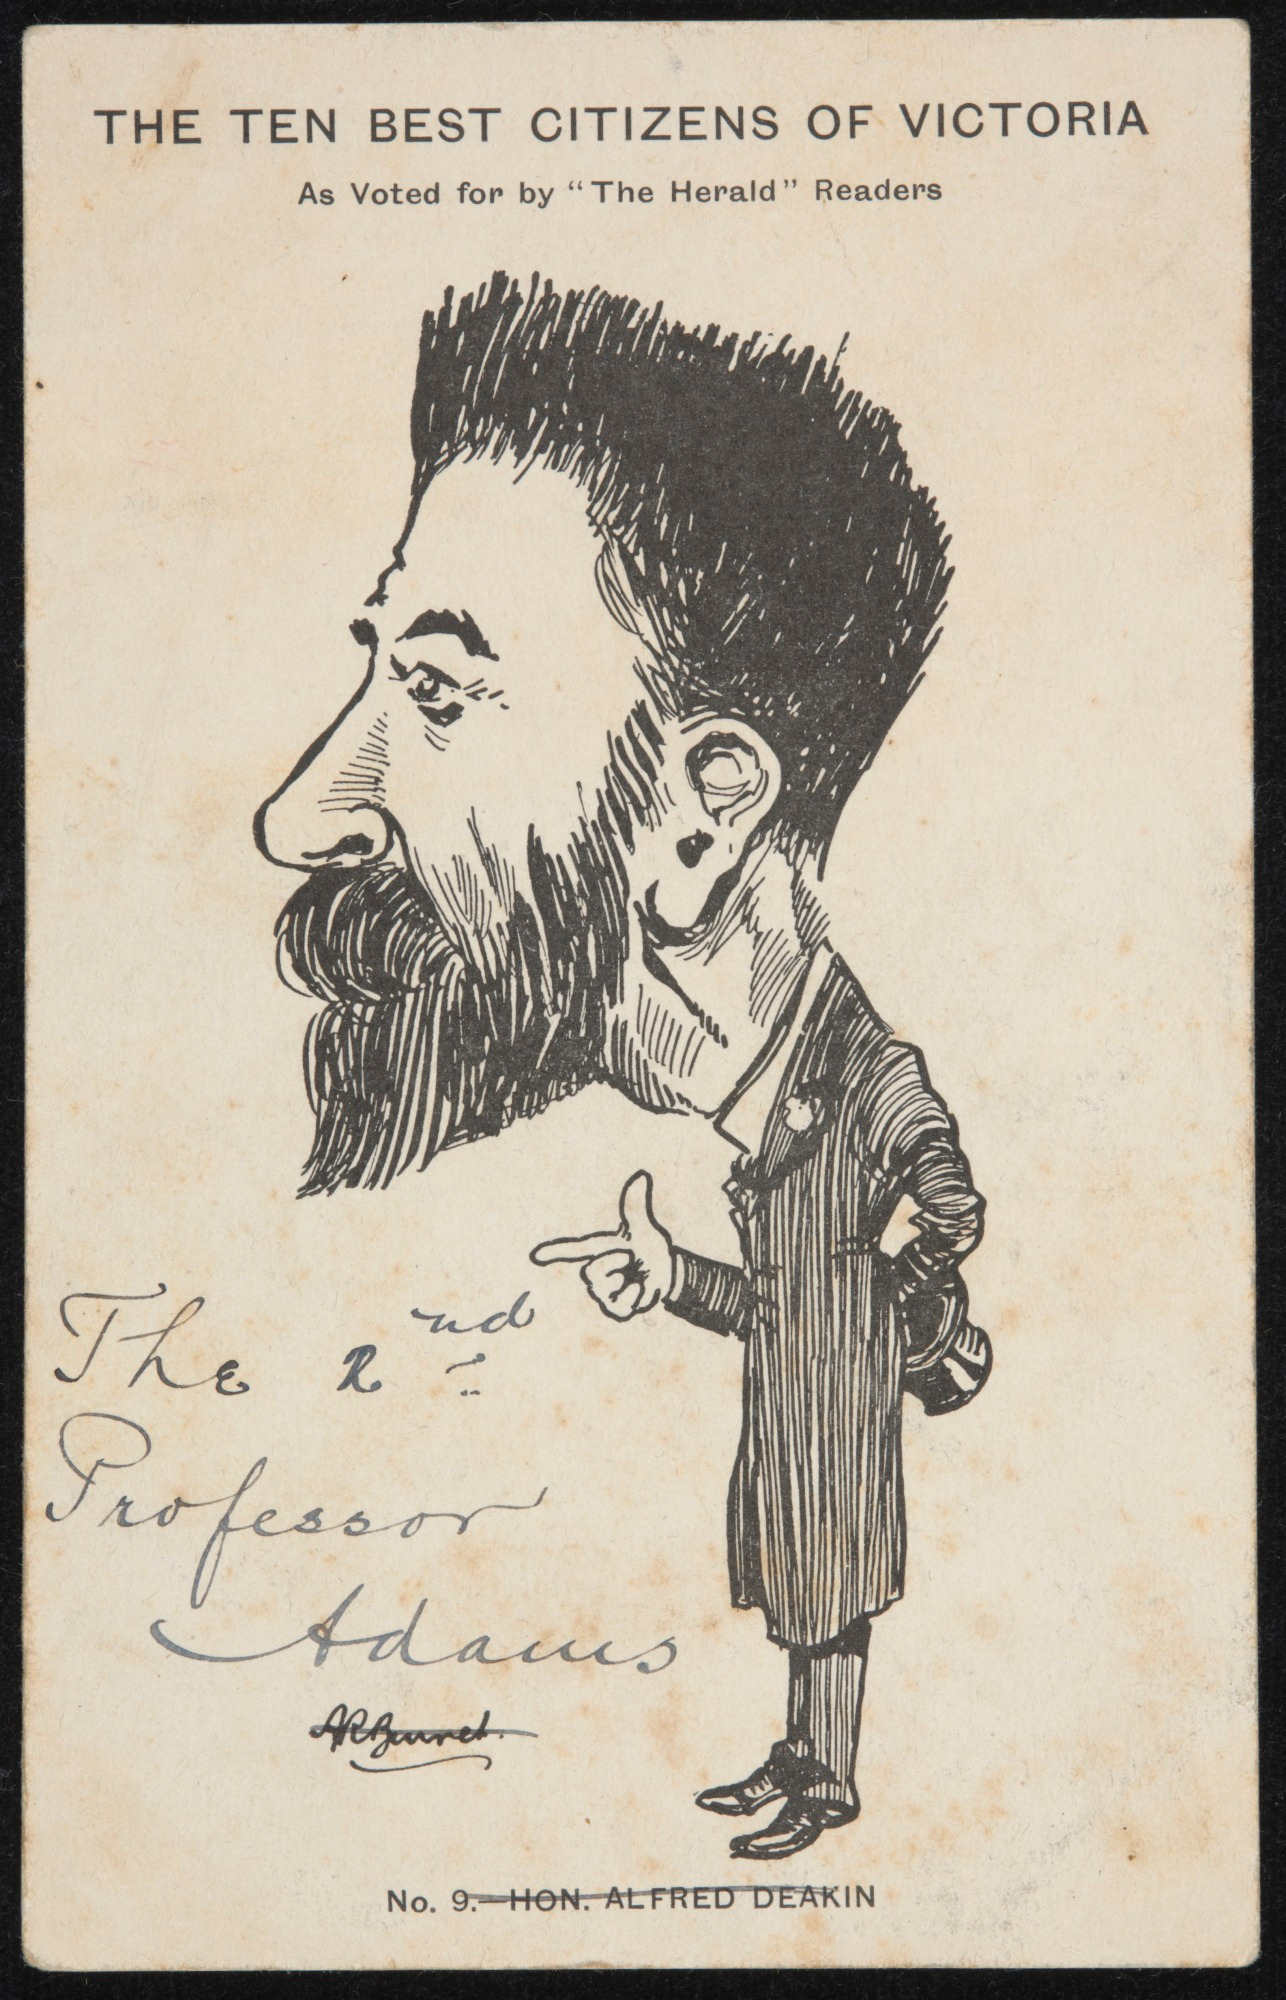 A postcard featuring a black and white cartoon depiction of a bearded man. - click to view larger image